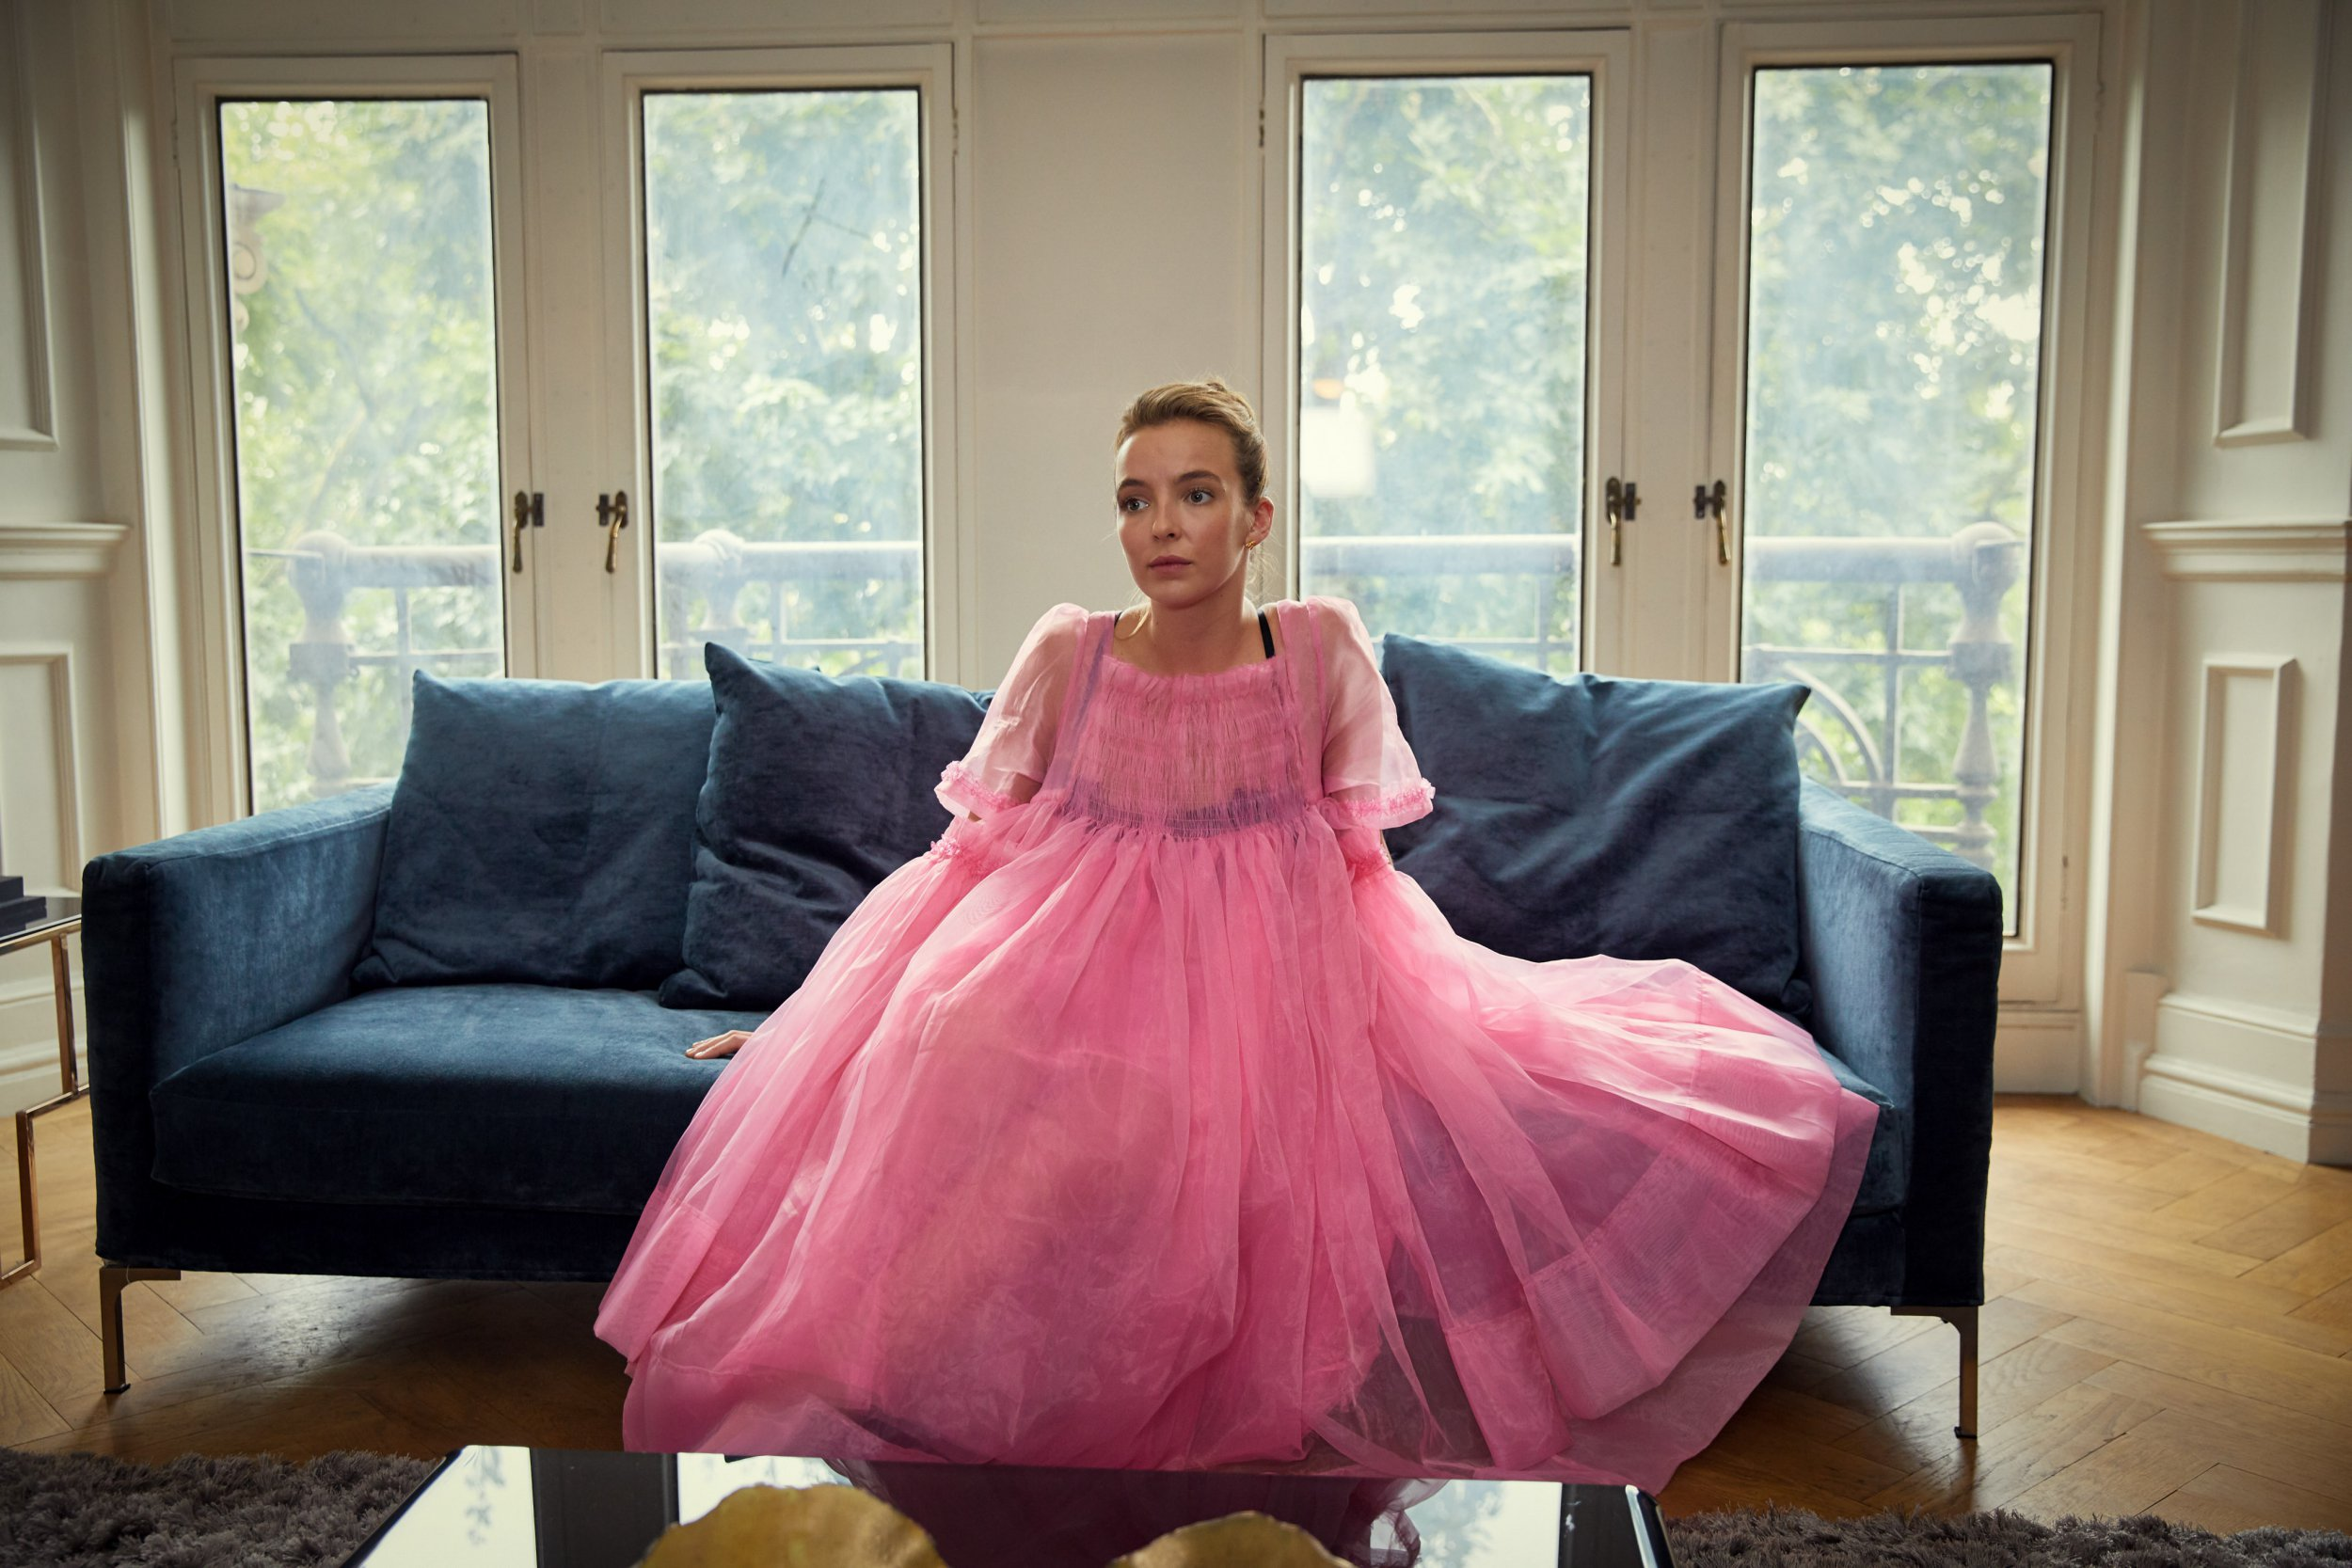 WARNING: Embargoed for publication until 00:00:01 on 18/09/2018 - Programme Name: Killing Eve - TX: n/a - Episode: n/a (No. Ep 2) - Picture Shows: *STRICTLY NOT FOR PUBLICATION UNTIL 00:01HRS, TUESDAY 18TH SEPTEMBER, 2018* Villanelle (JODIE COMER) - (C) Sid Gentle Films - Photographer: Robert Viglasky